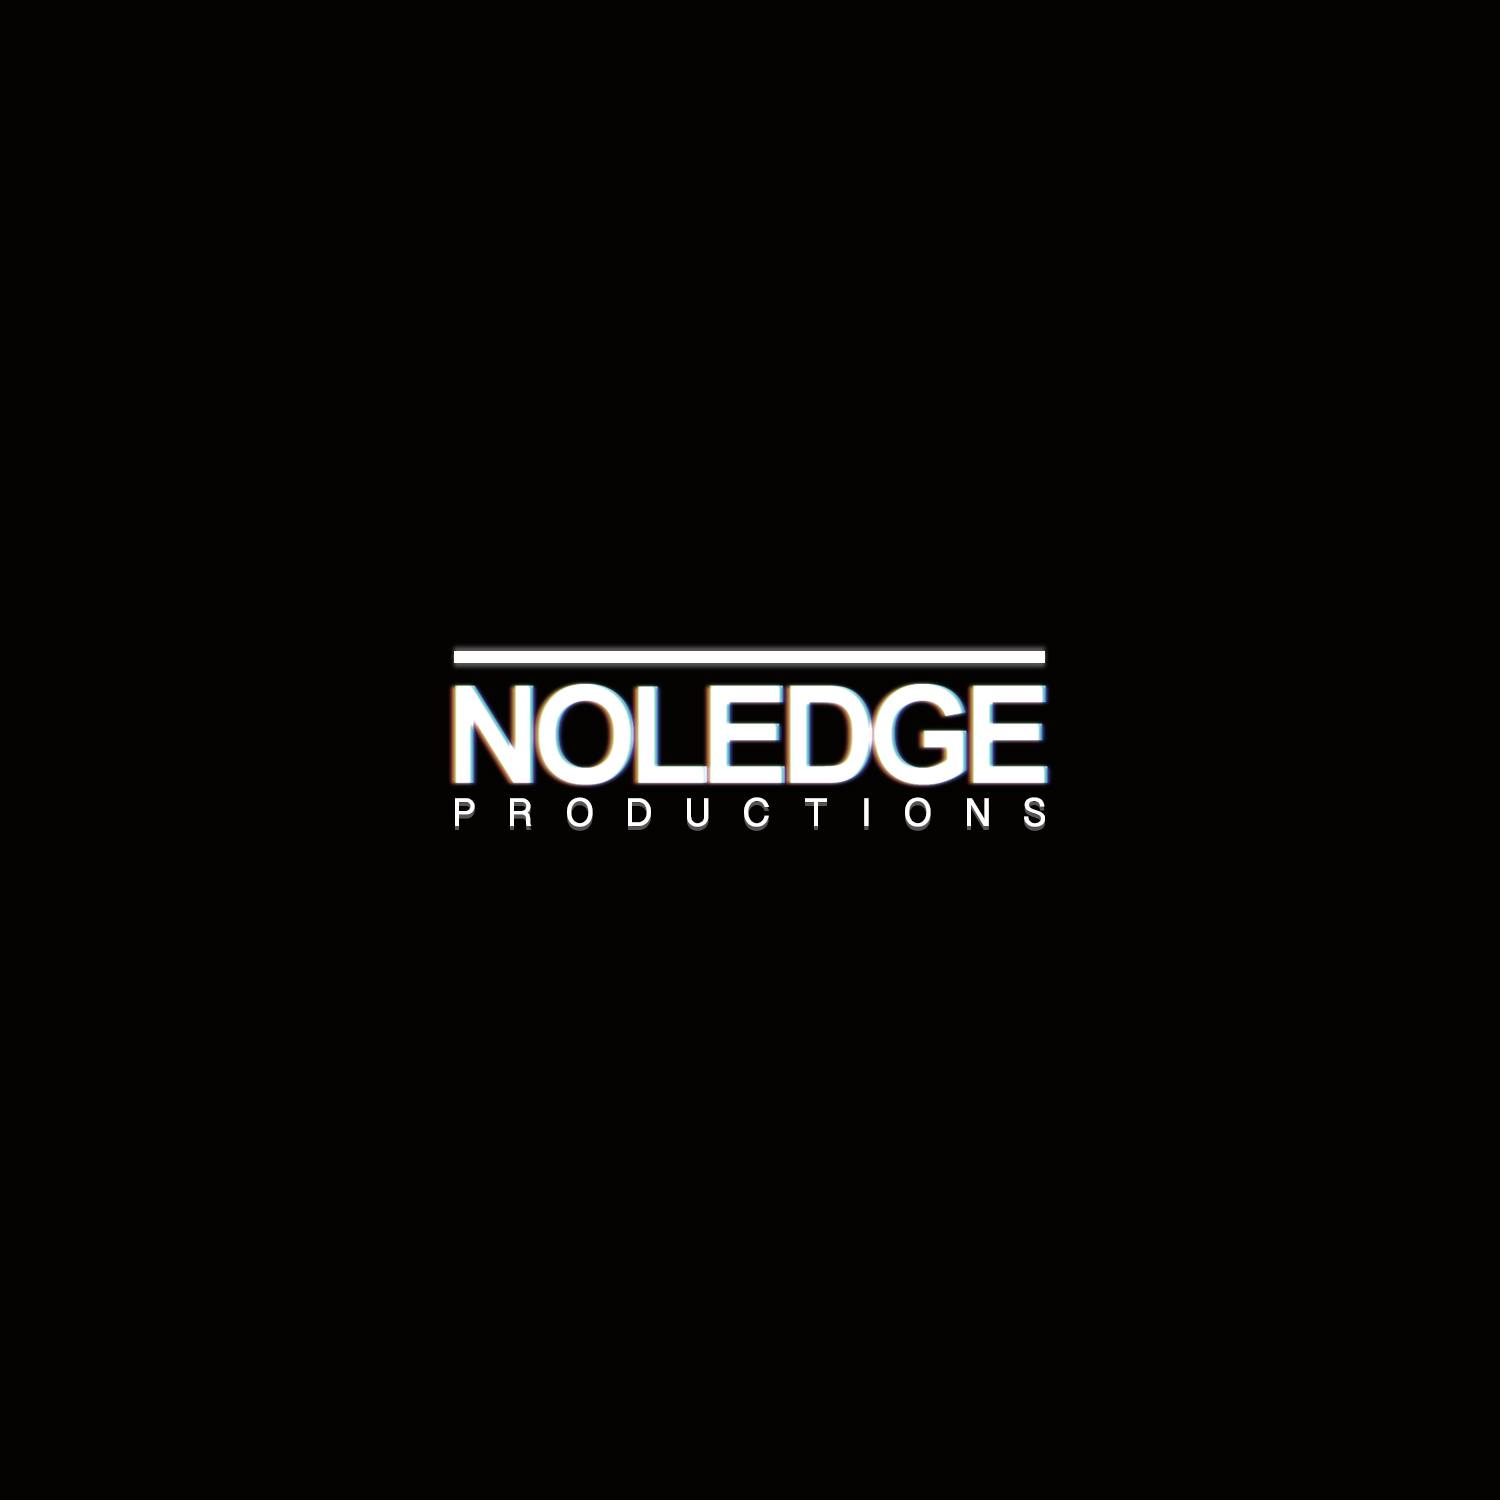 Noledgeproductions